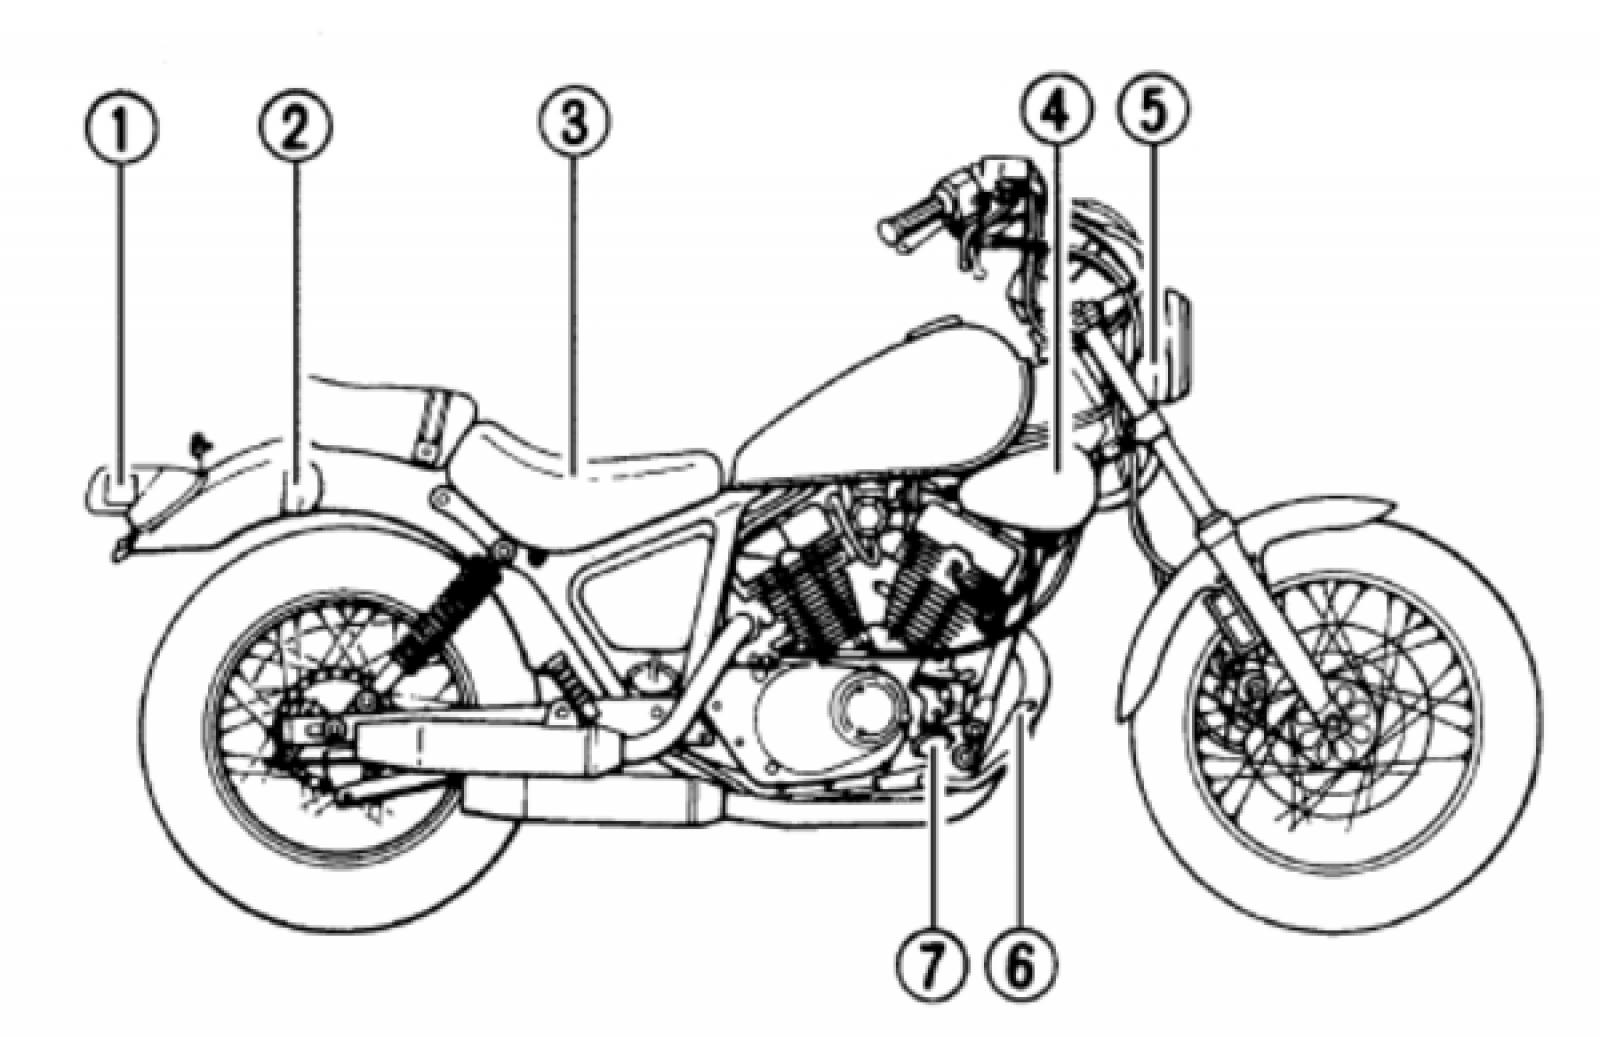 2000 yamaha 250 v twin 6 wire diagram   37 wiring diagram